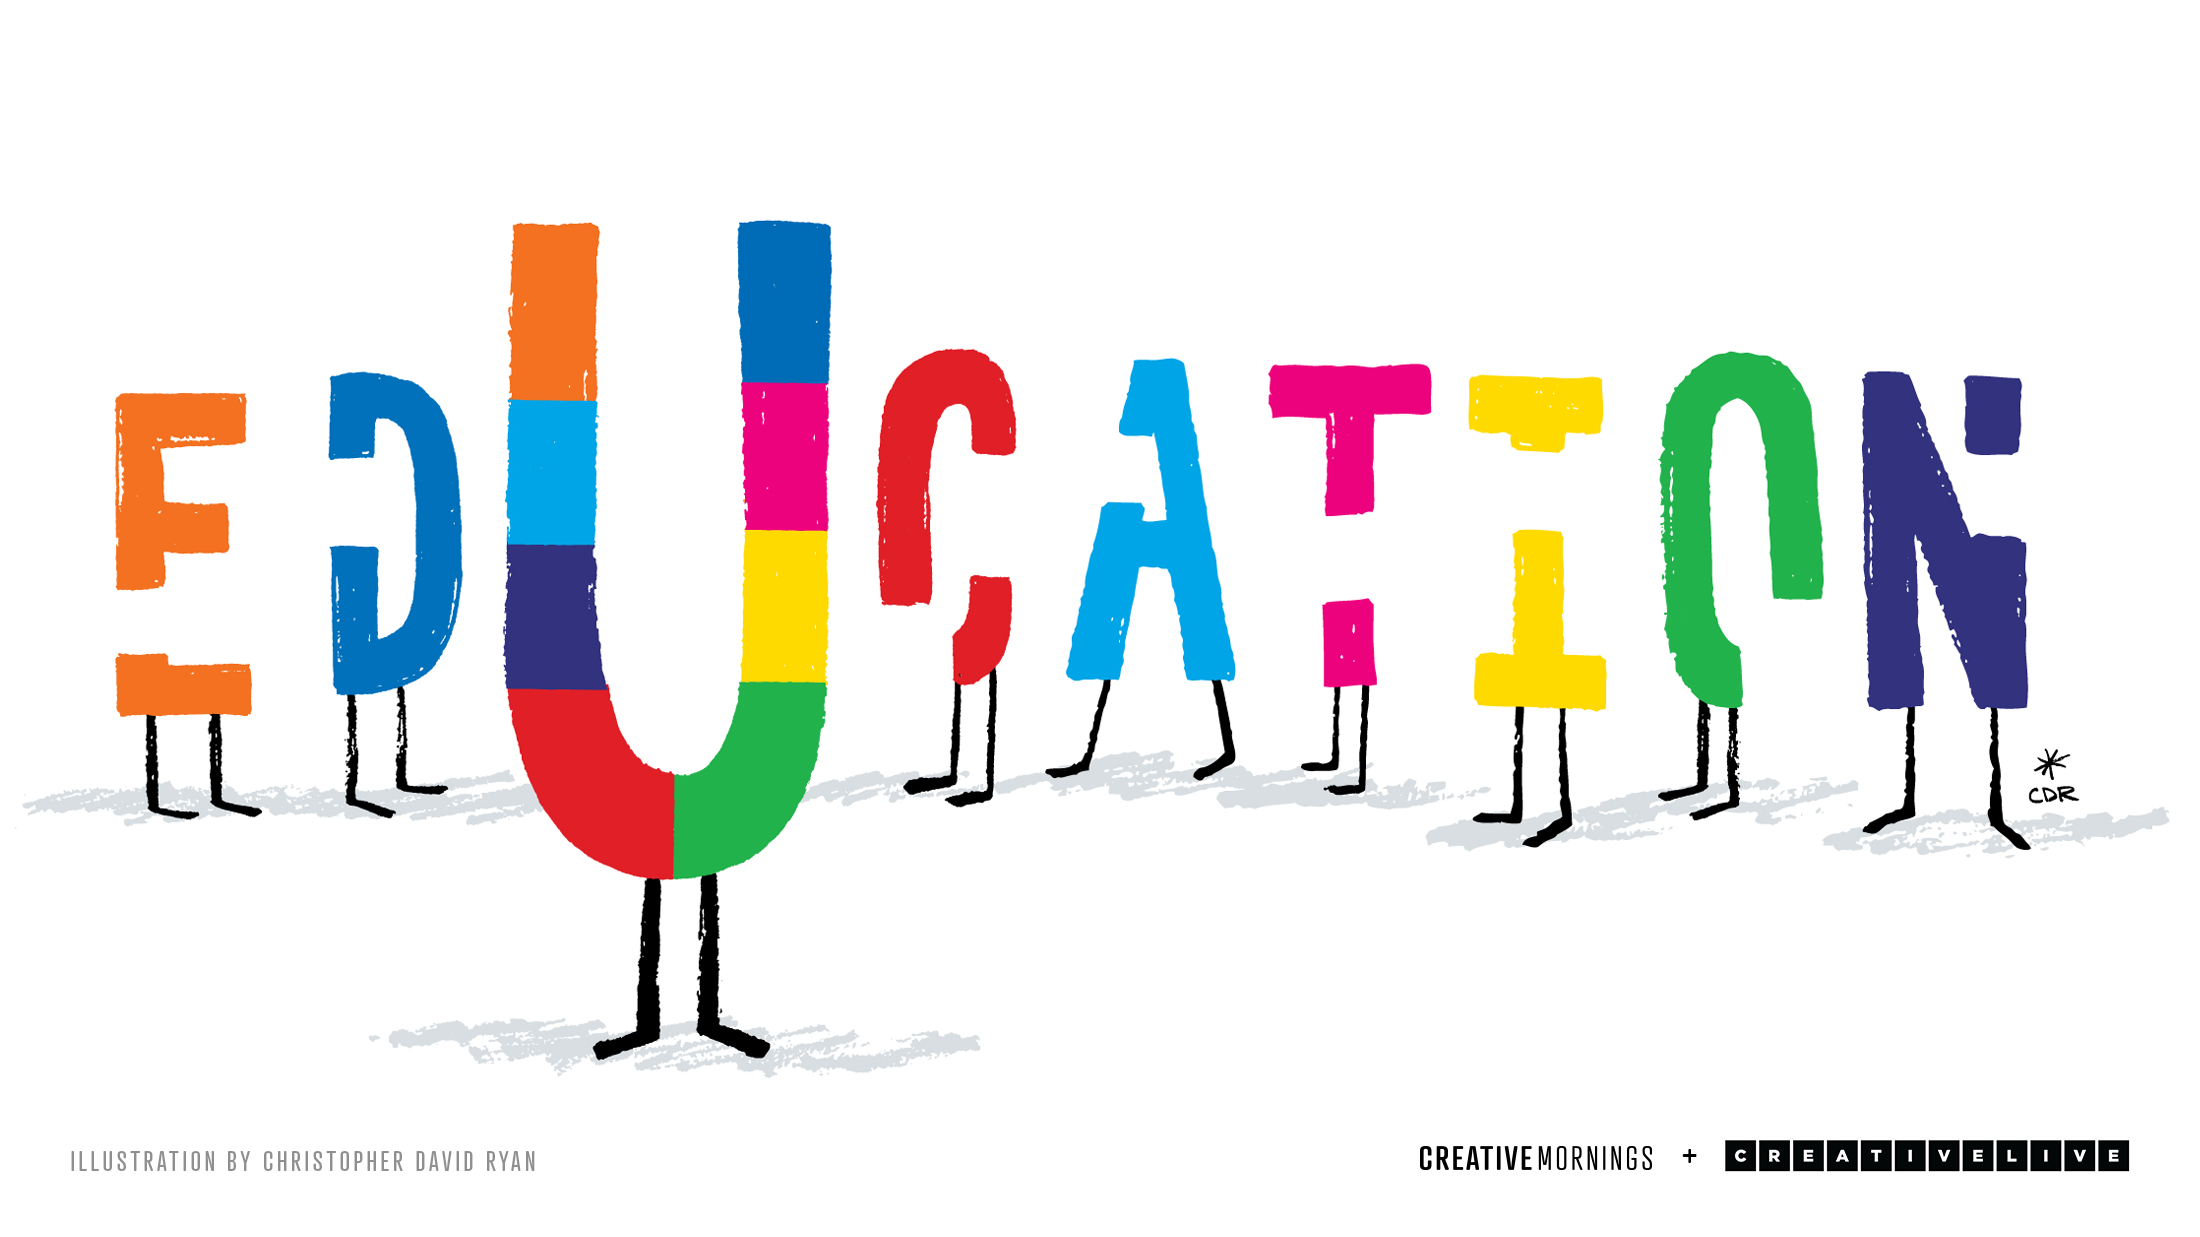 Education - CreativeMornings themes